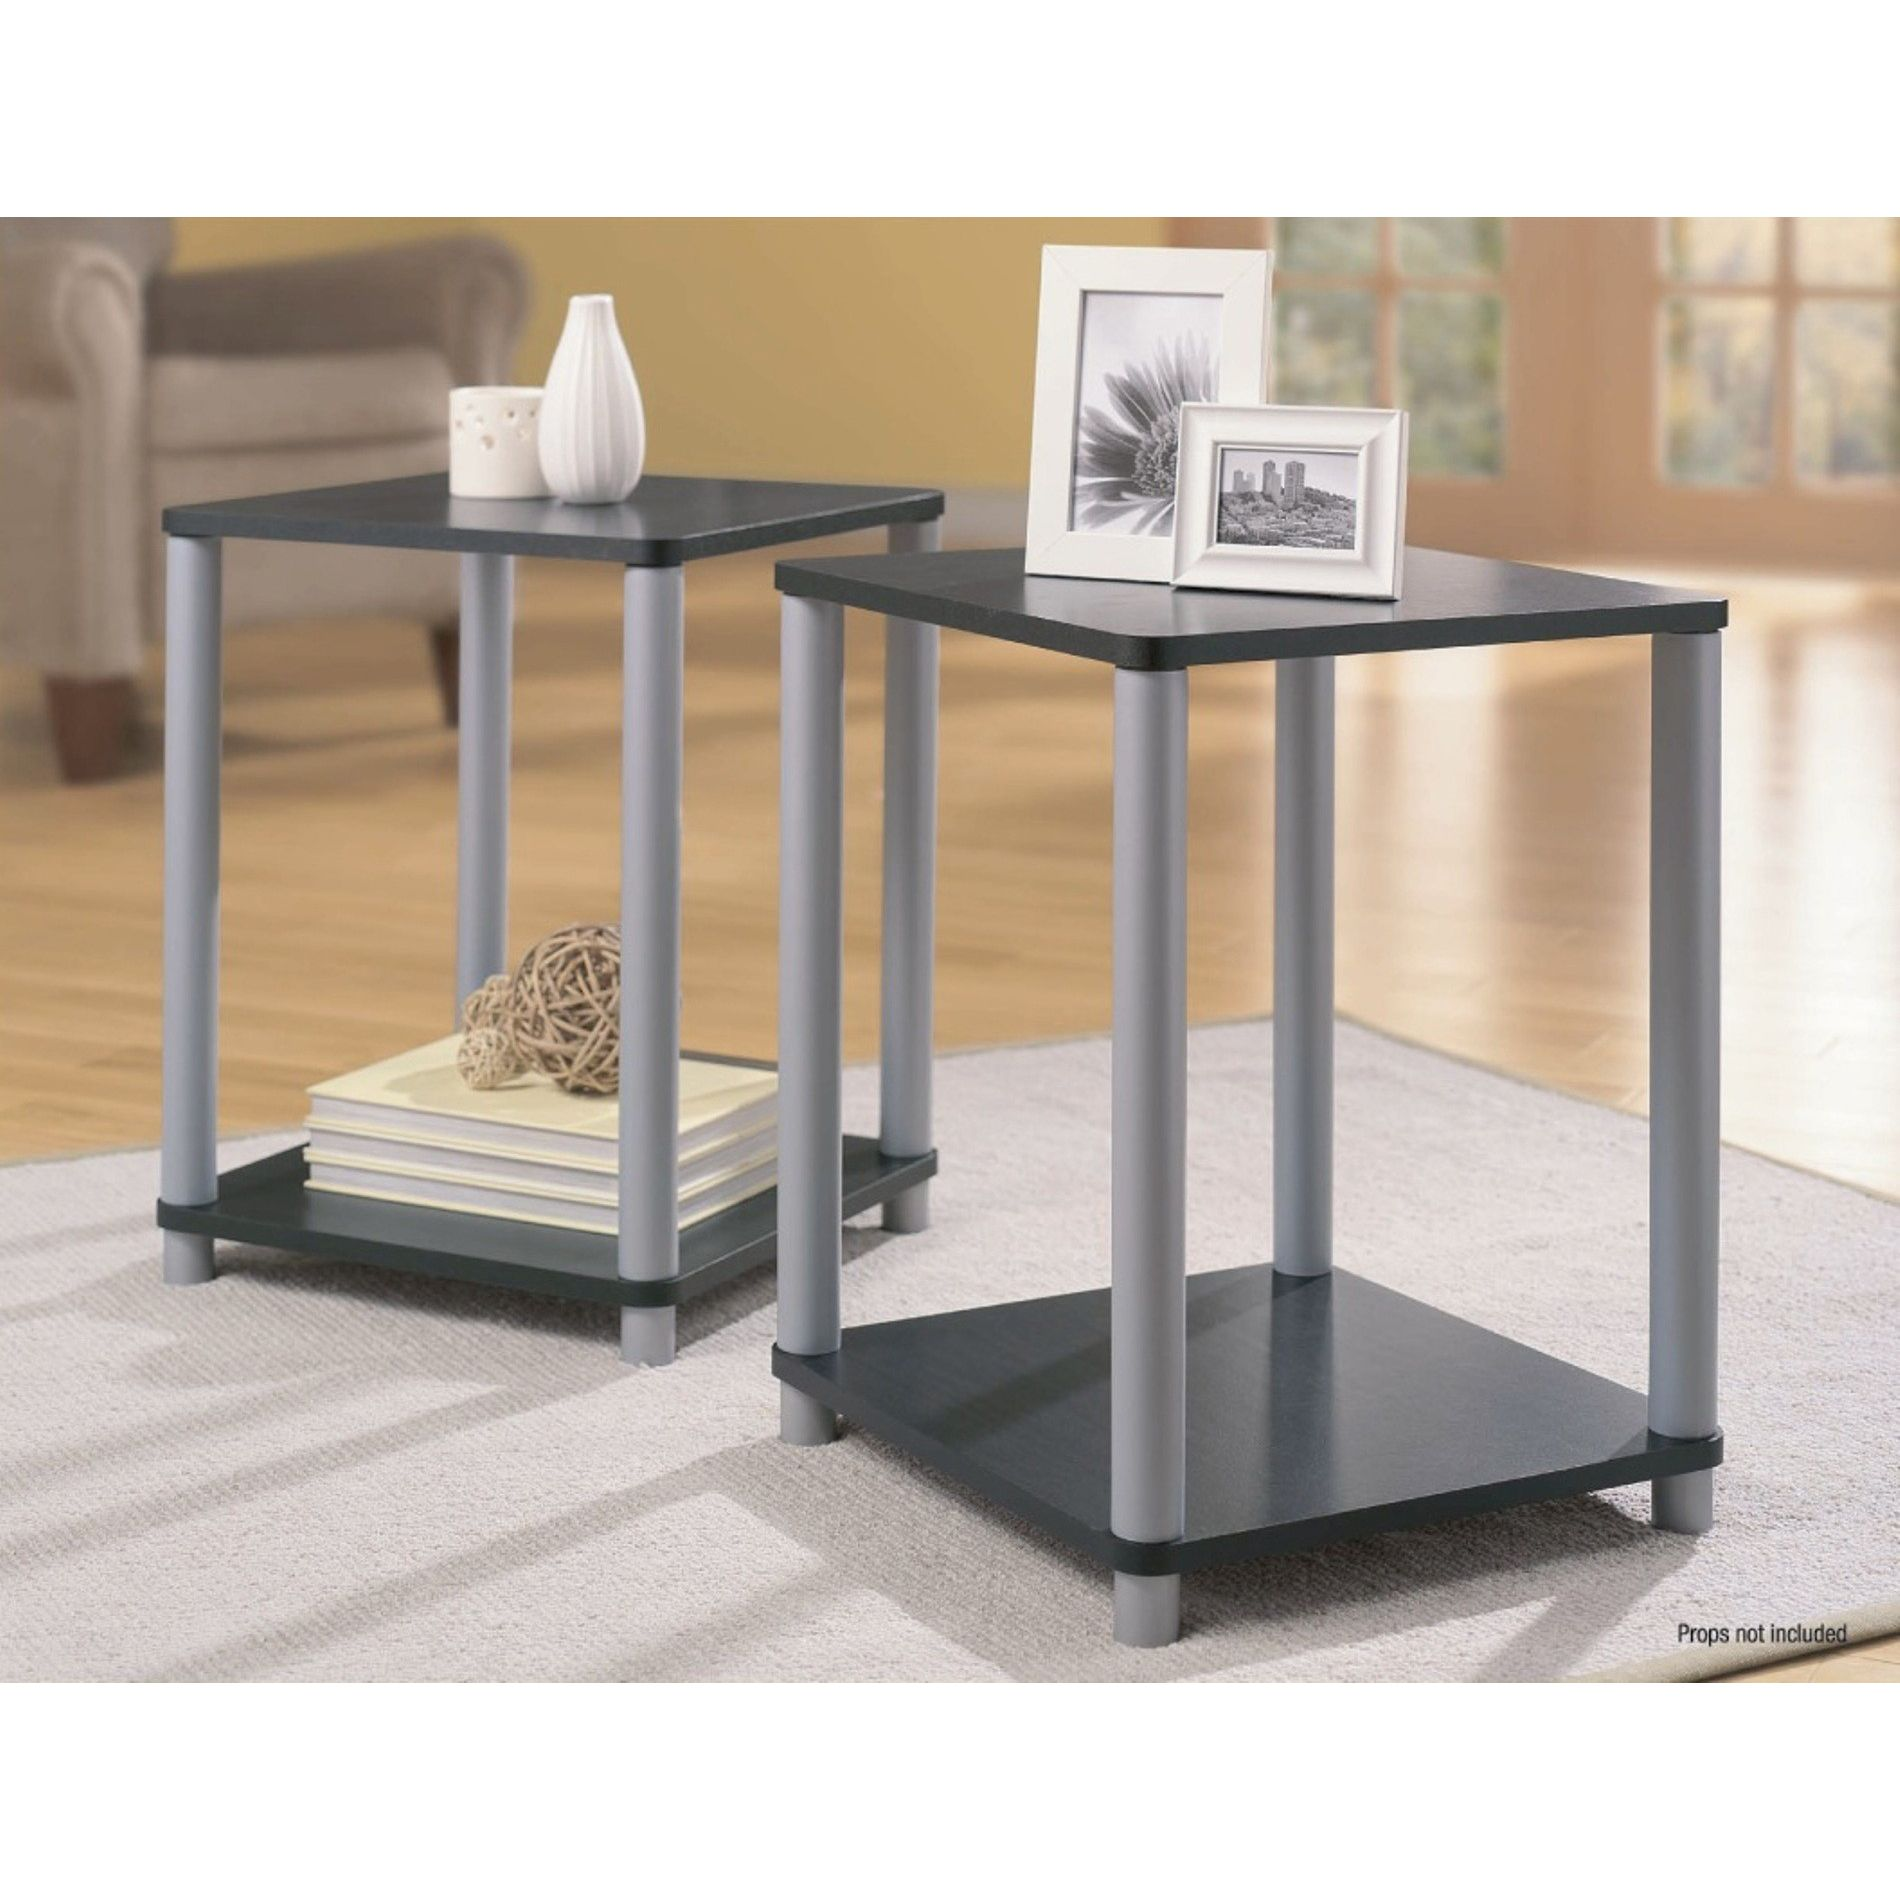 brown outdoor side table probably terrific best black end tables essential home and silver set spin prod patio clearance rustic living room coffee decor with storage ikea chrome